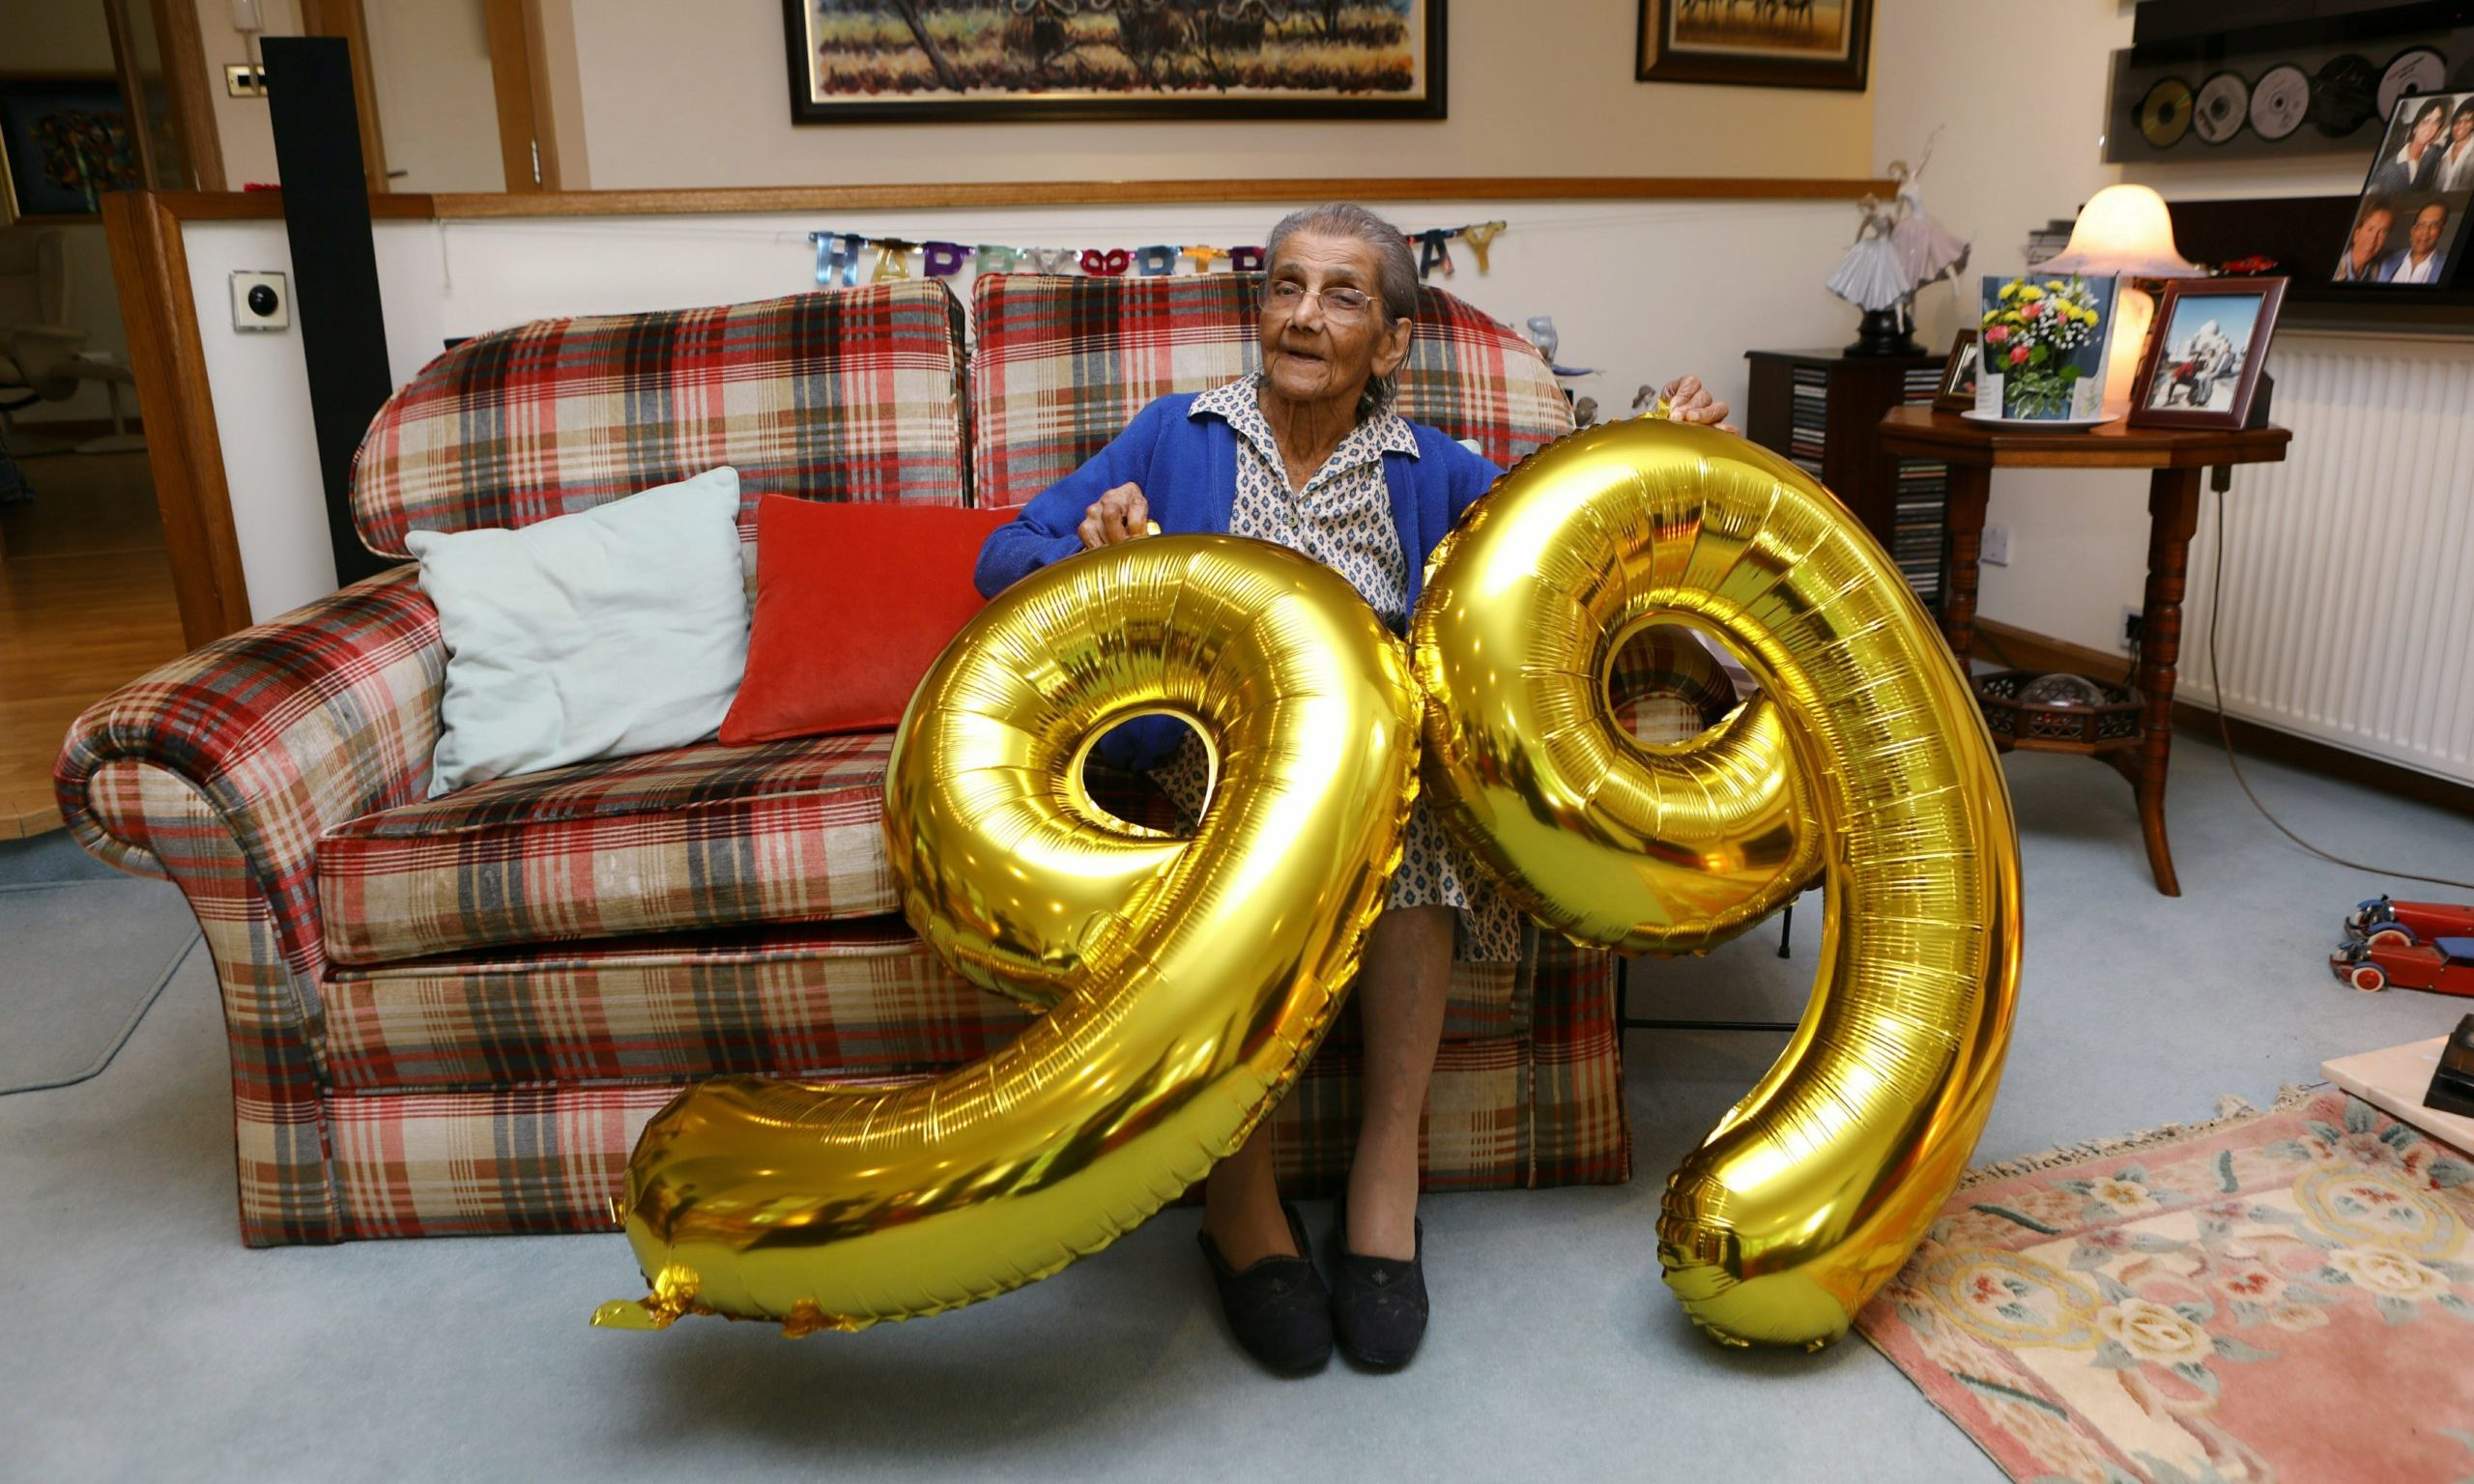 Courier News - Ross Gardiner story - Daphne Shah. CR0022279 Picture shows; Daphne Shah at home in St. Madoes today, celebrating her 99th birthday, after recovering from Covid-19 earlier this year.